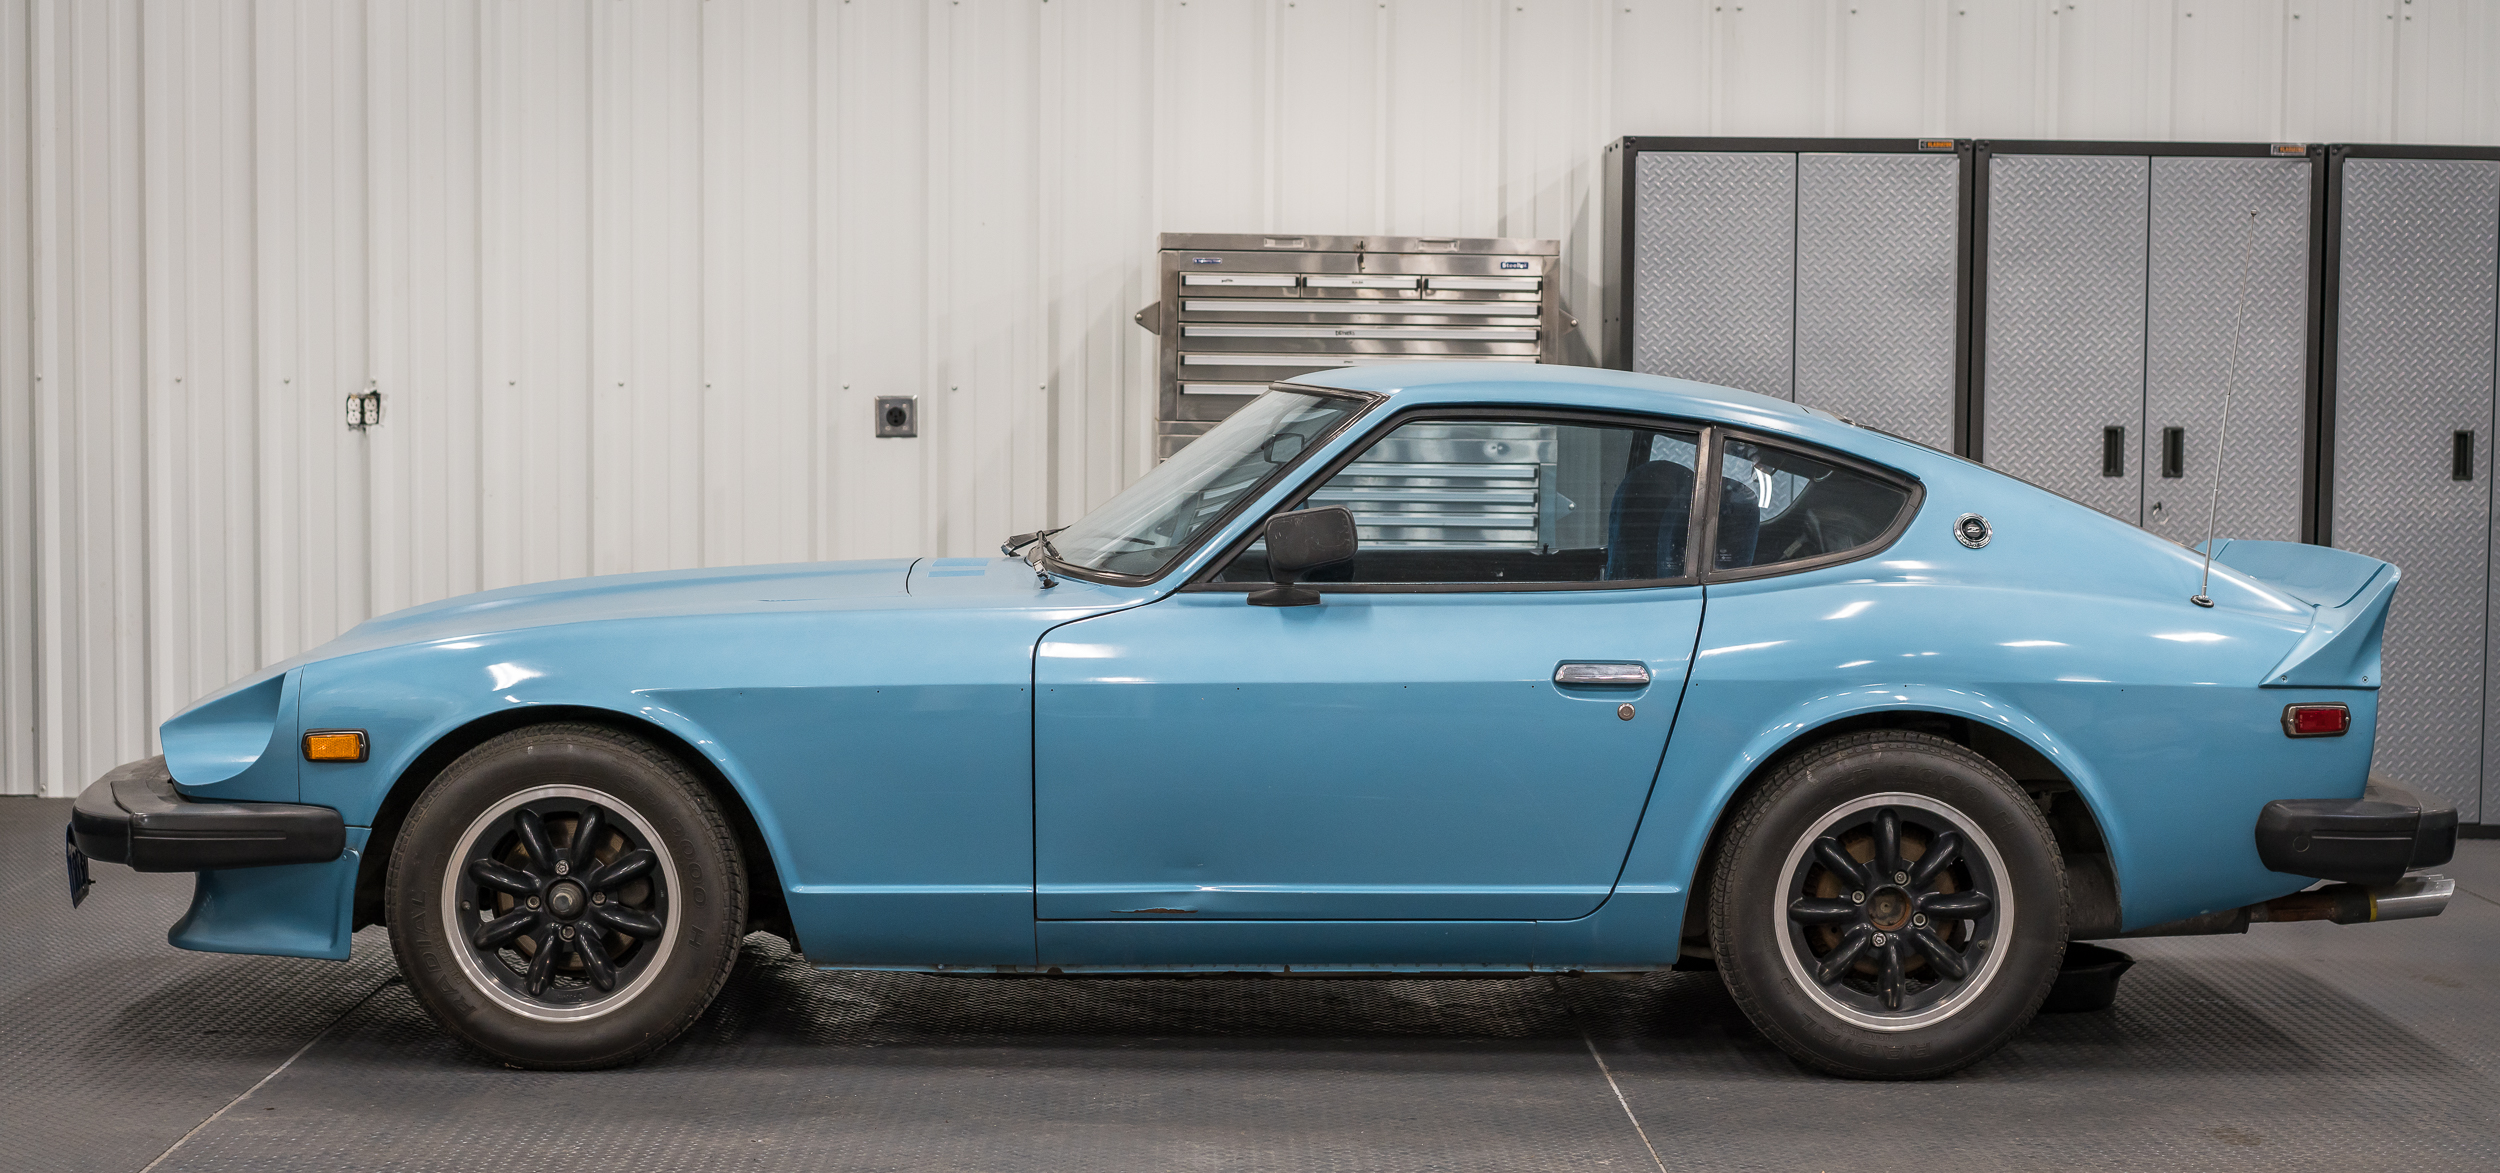 Mom's 280Z| Builds and Project Cars forum |